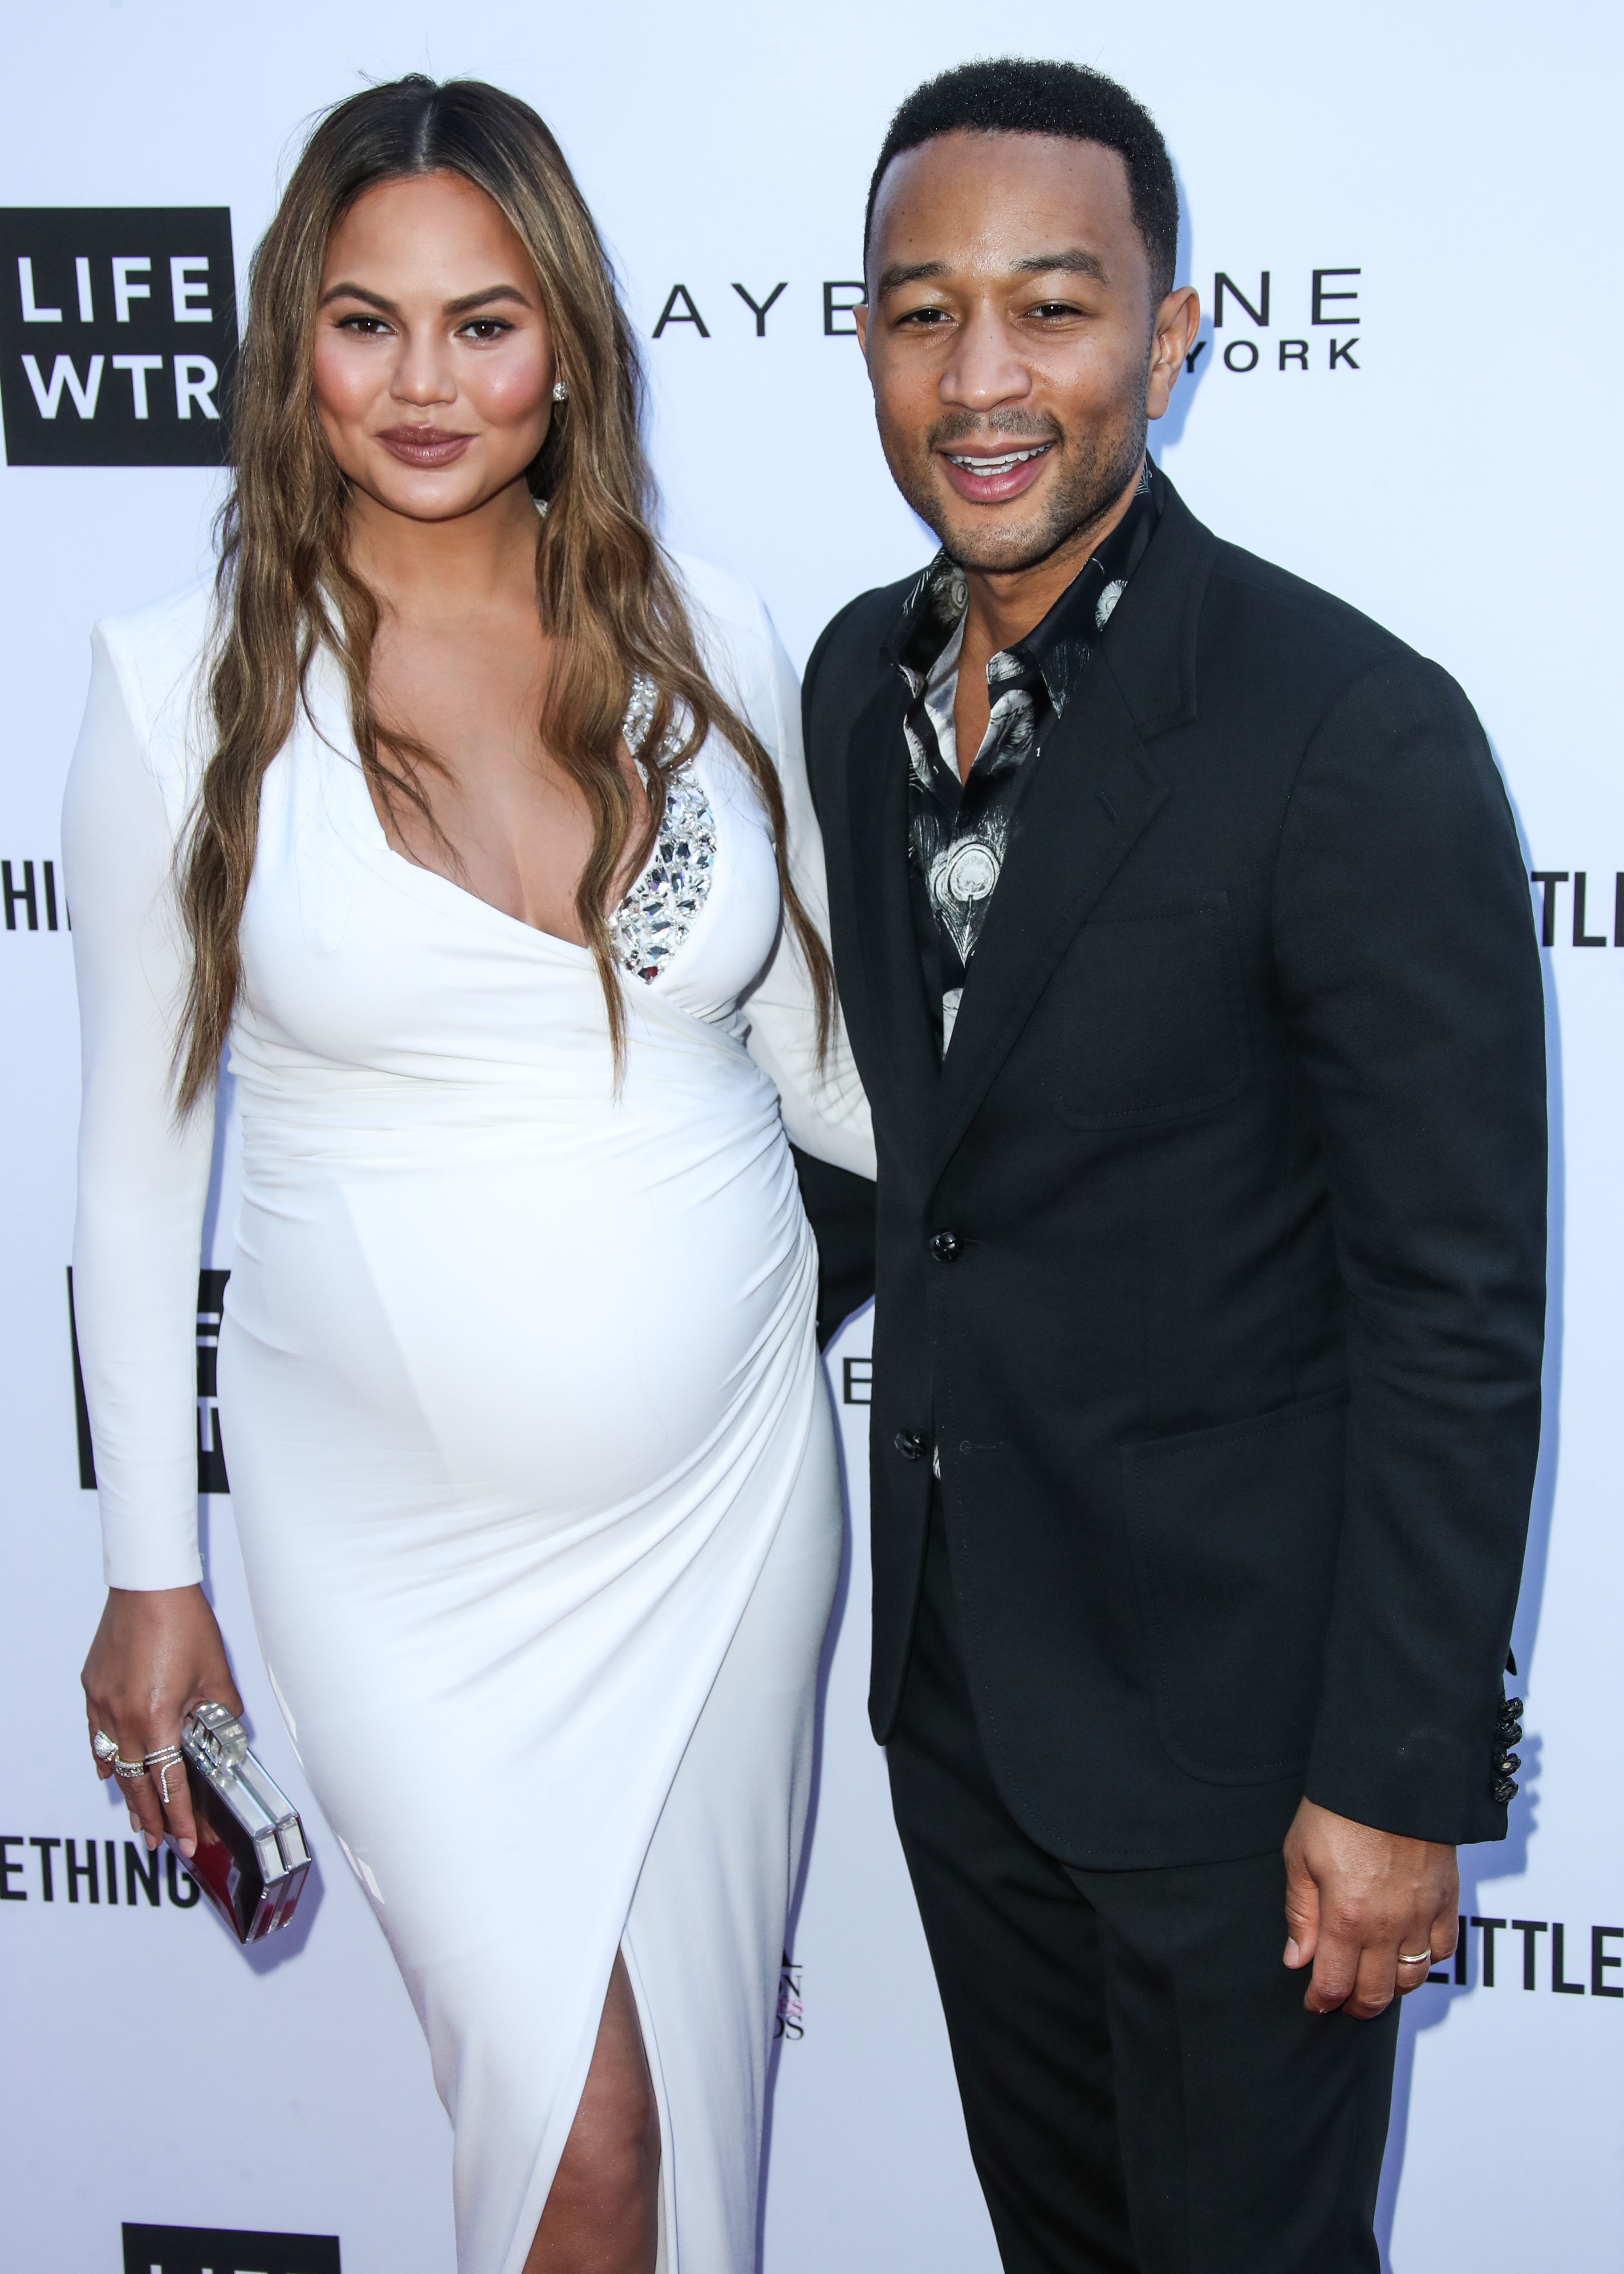 Chrissy Teigen and John Legend arrive at the Daily Front Row Fashion Awards in Los Angeles on April 8, 2018.